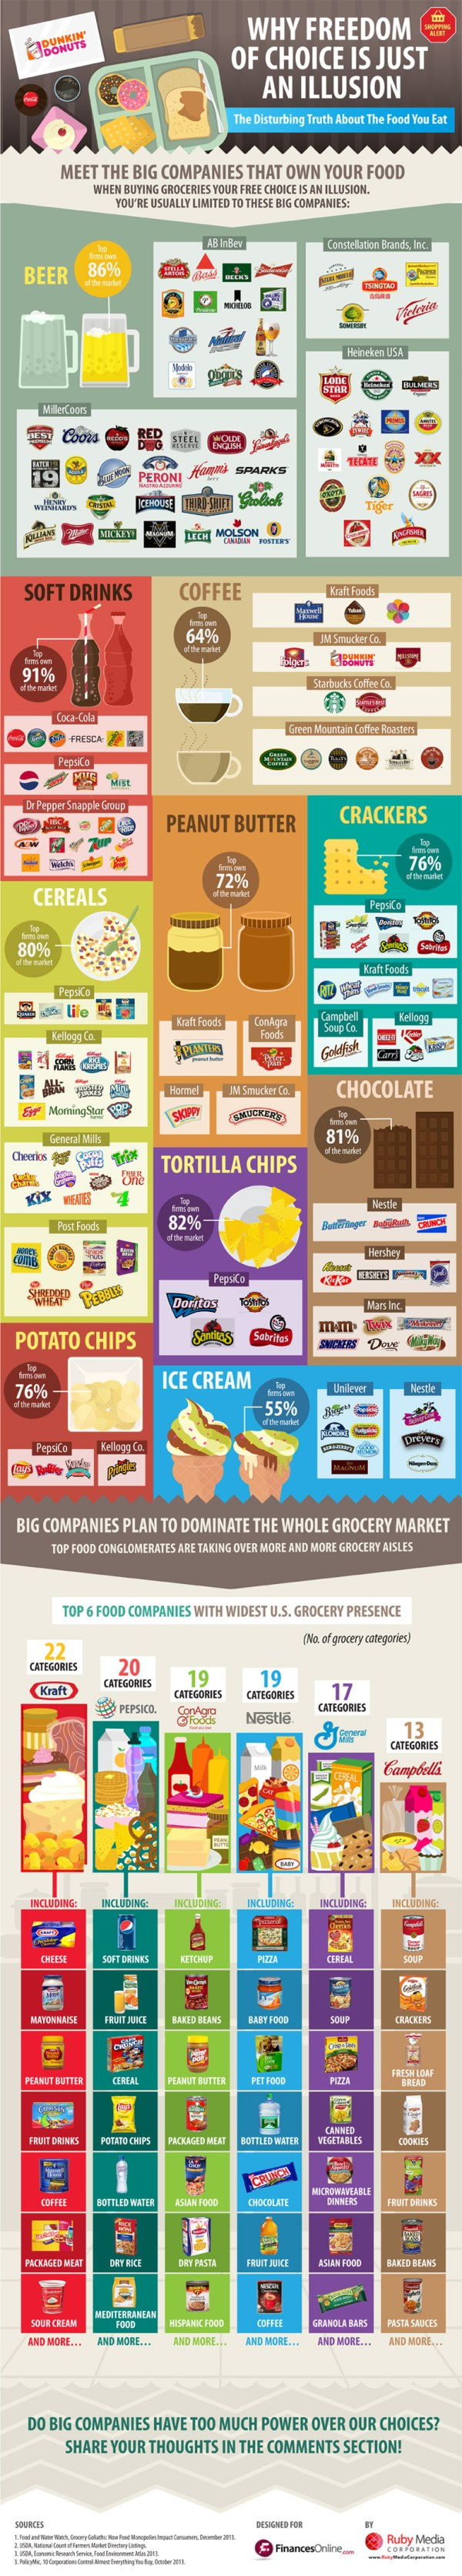 Top Grocery Brands Comparison: Disturbing Truth About How Big Food Companies Create The Illusion of Free Choice